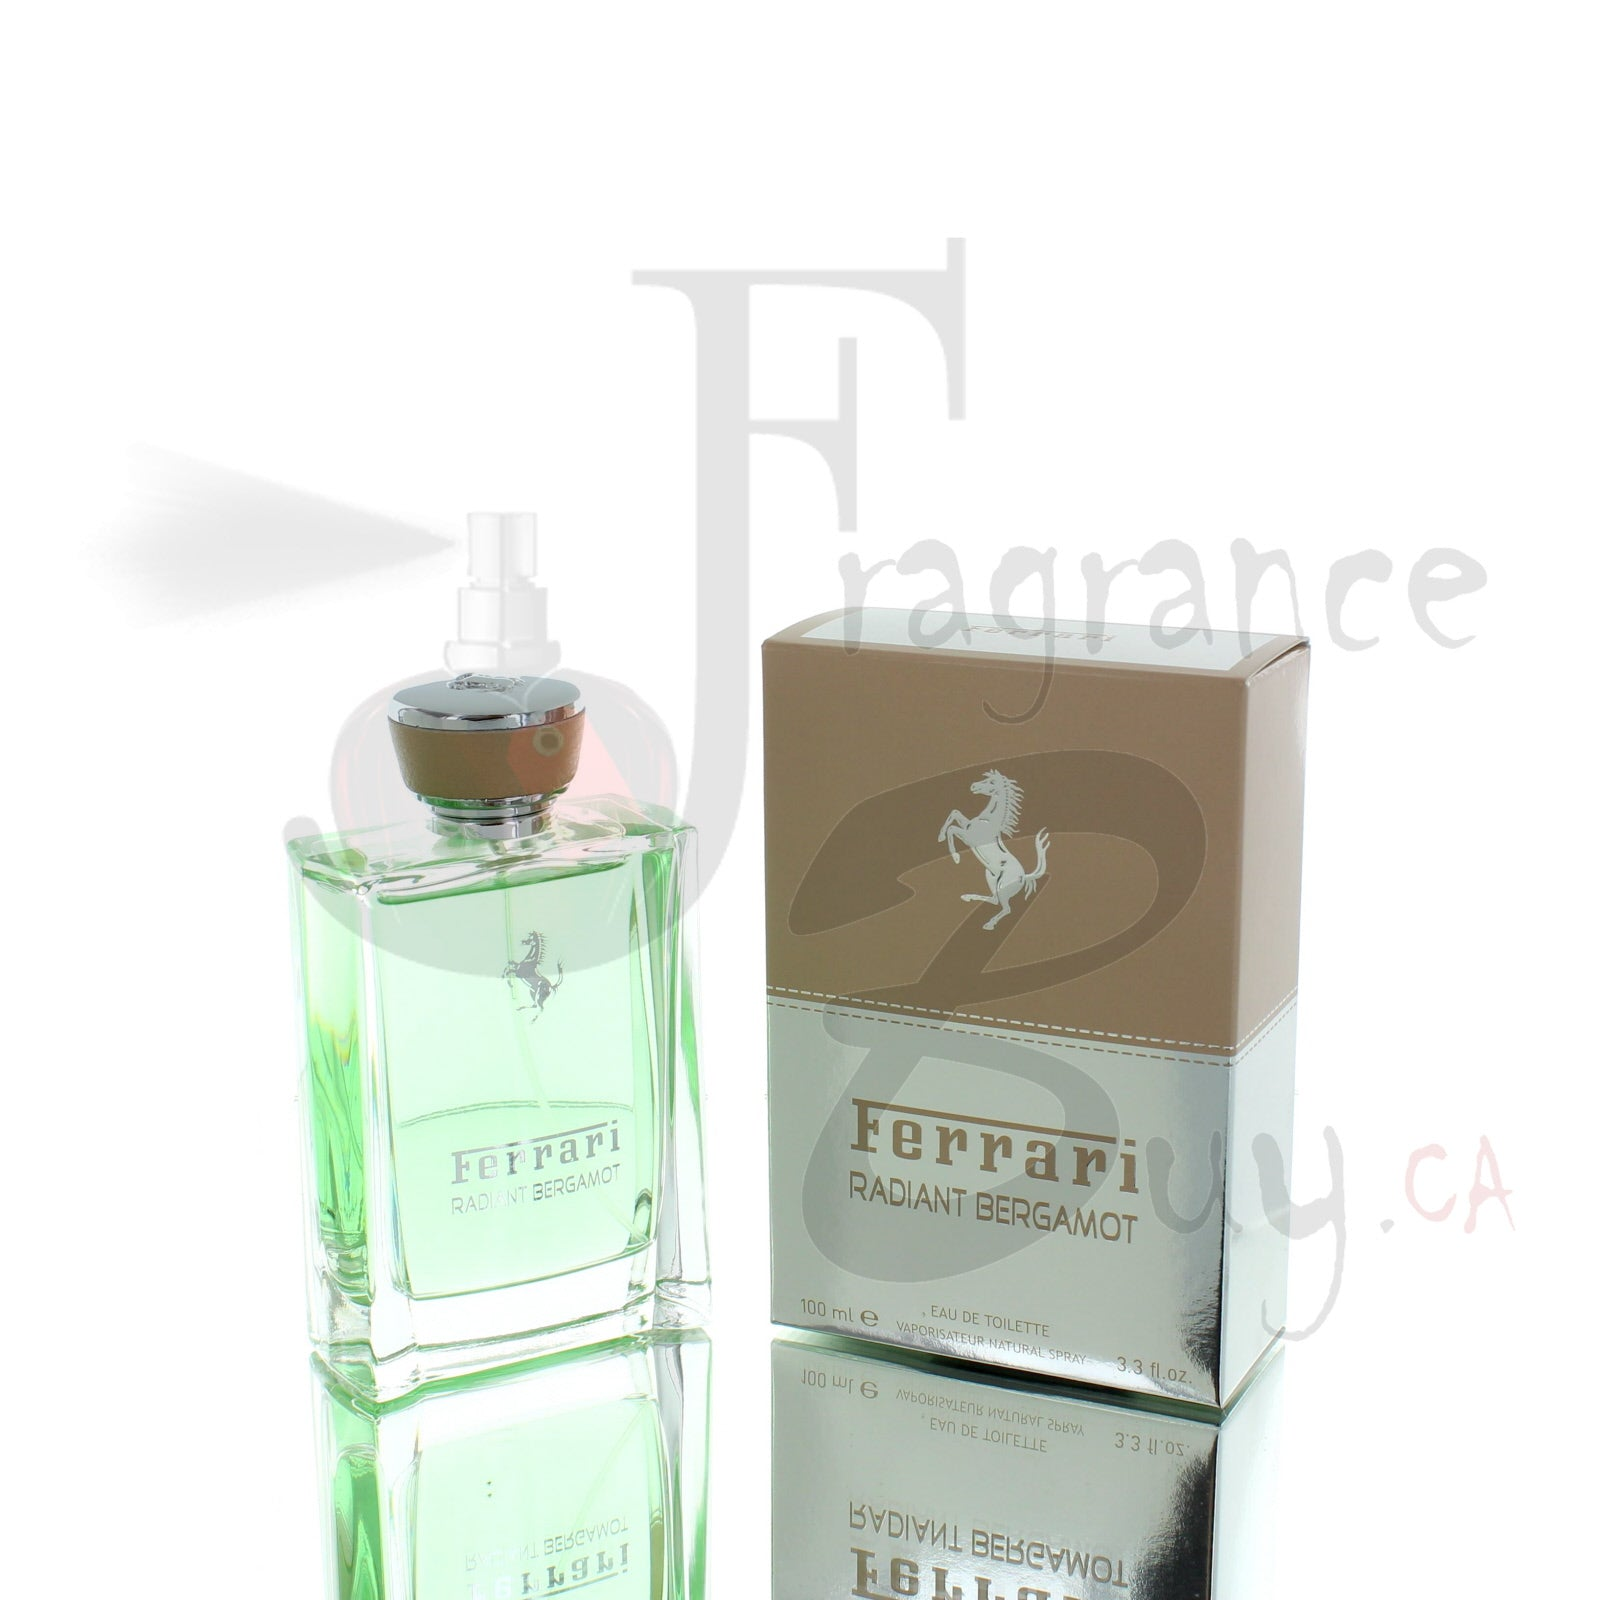 Ferrari Radiant Bergamot For Man/Woman